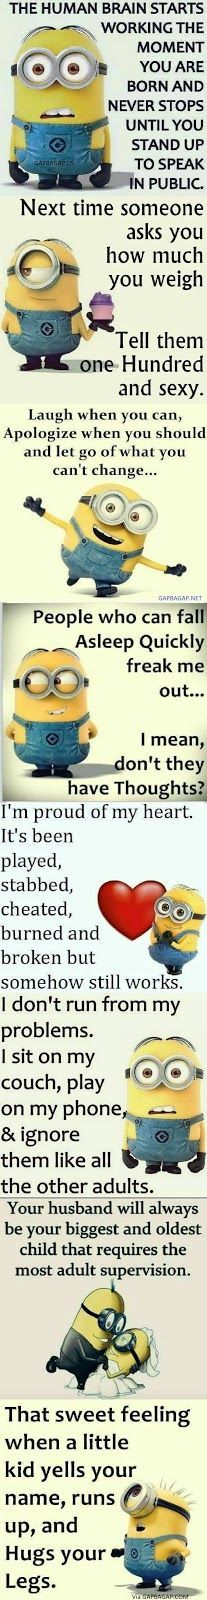 Funny Minion Collection From around The World - funny minion memes, Funny Minion Quote, funny minion quotes, Funny Quote, Quotes - Minion-Quotes.com